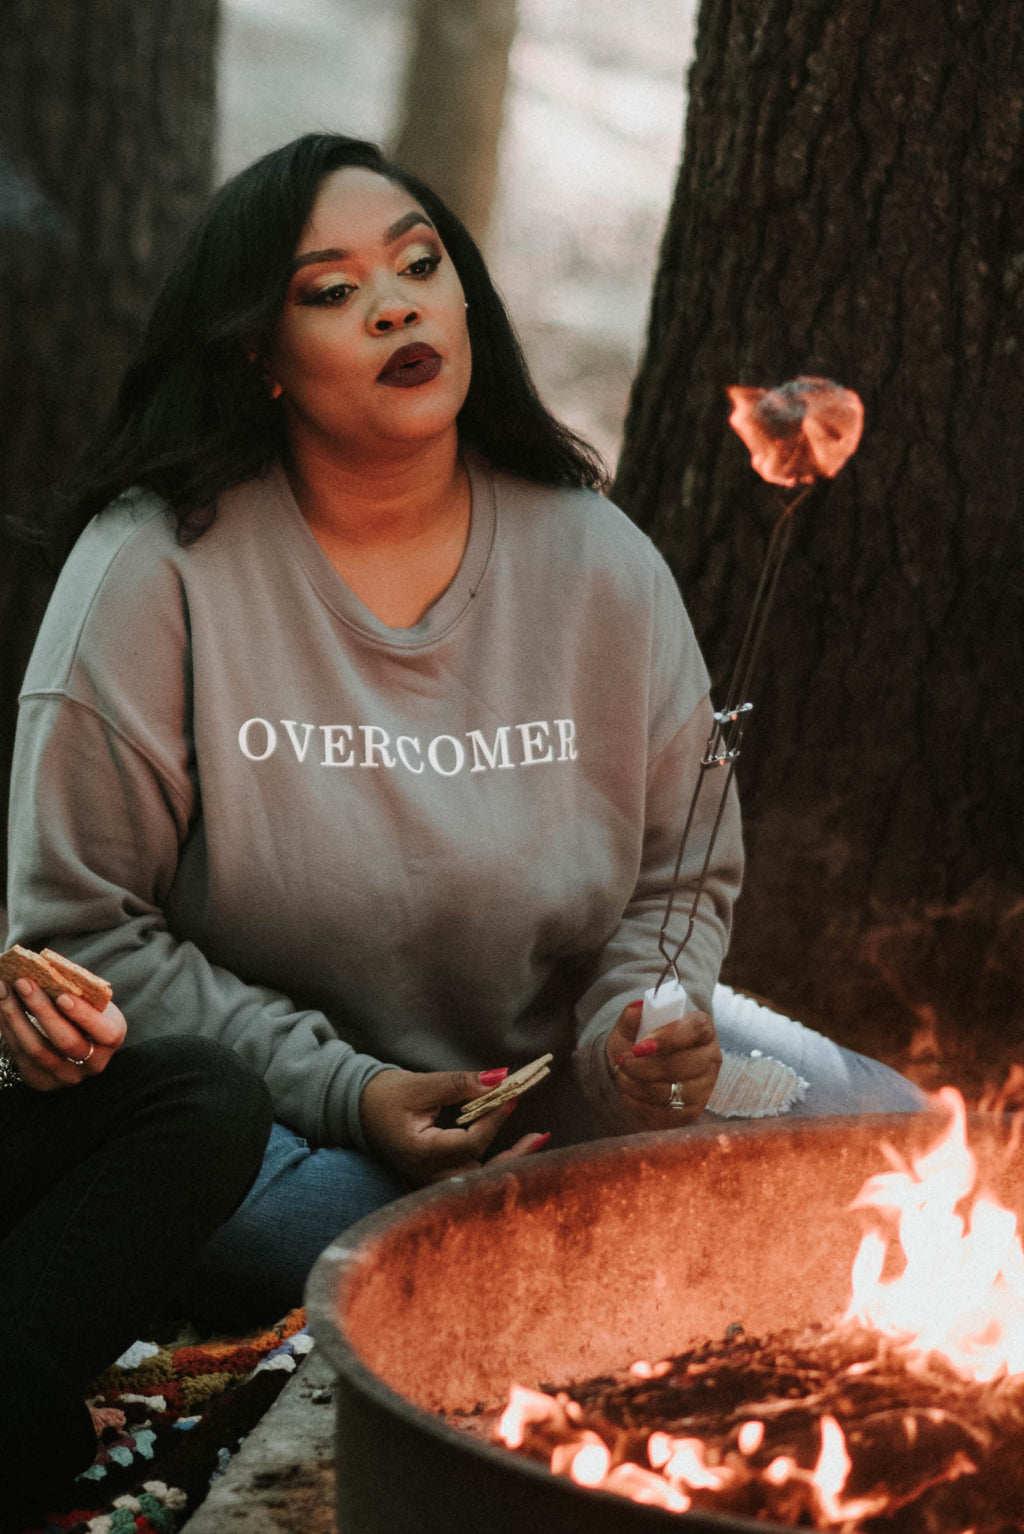 Overcomer Sweatshirt